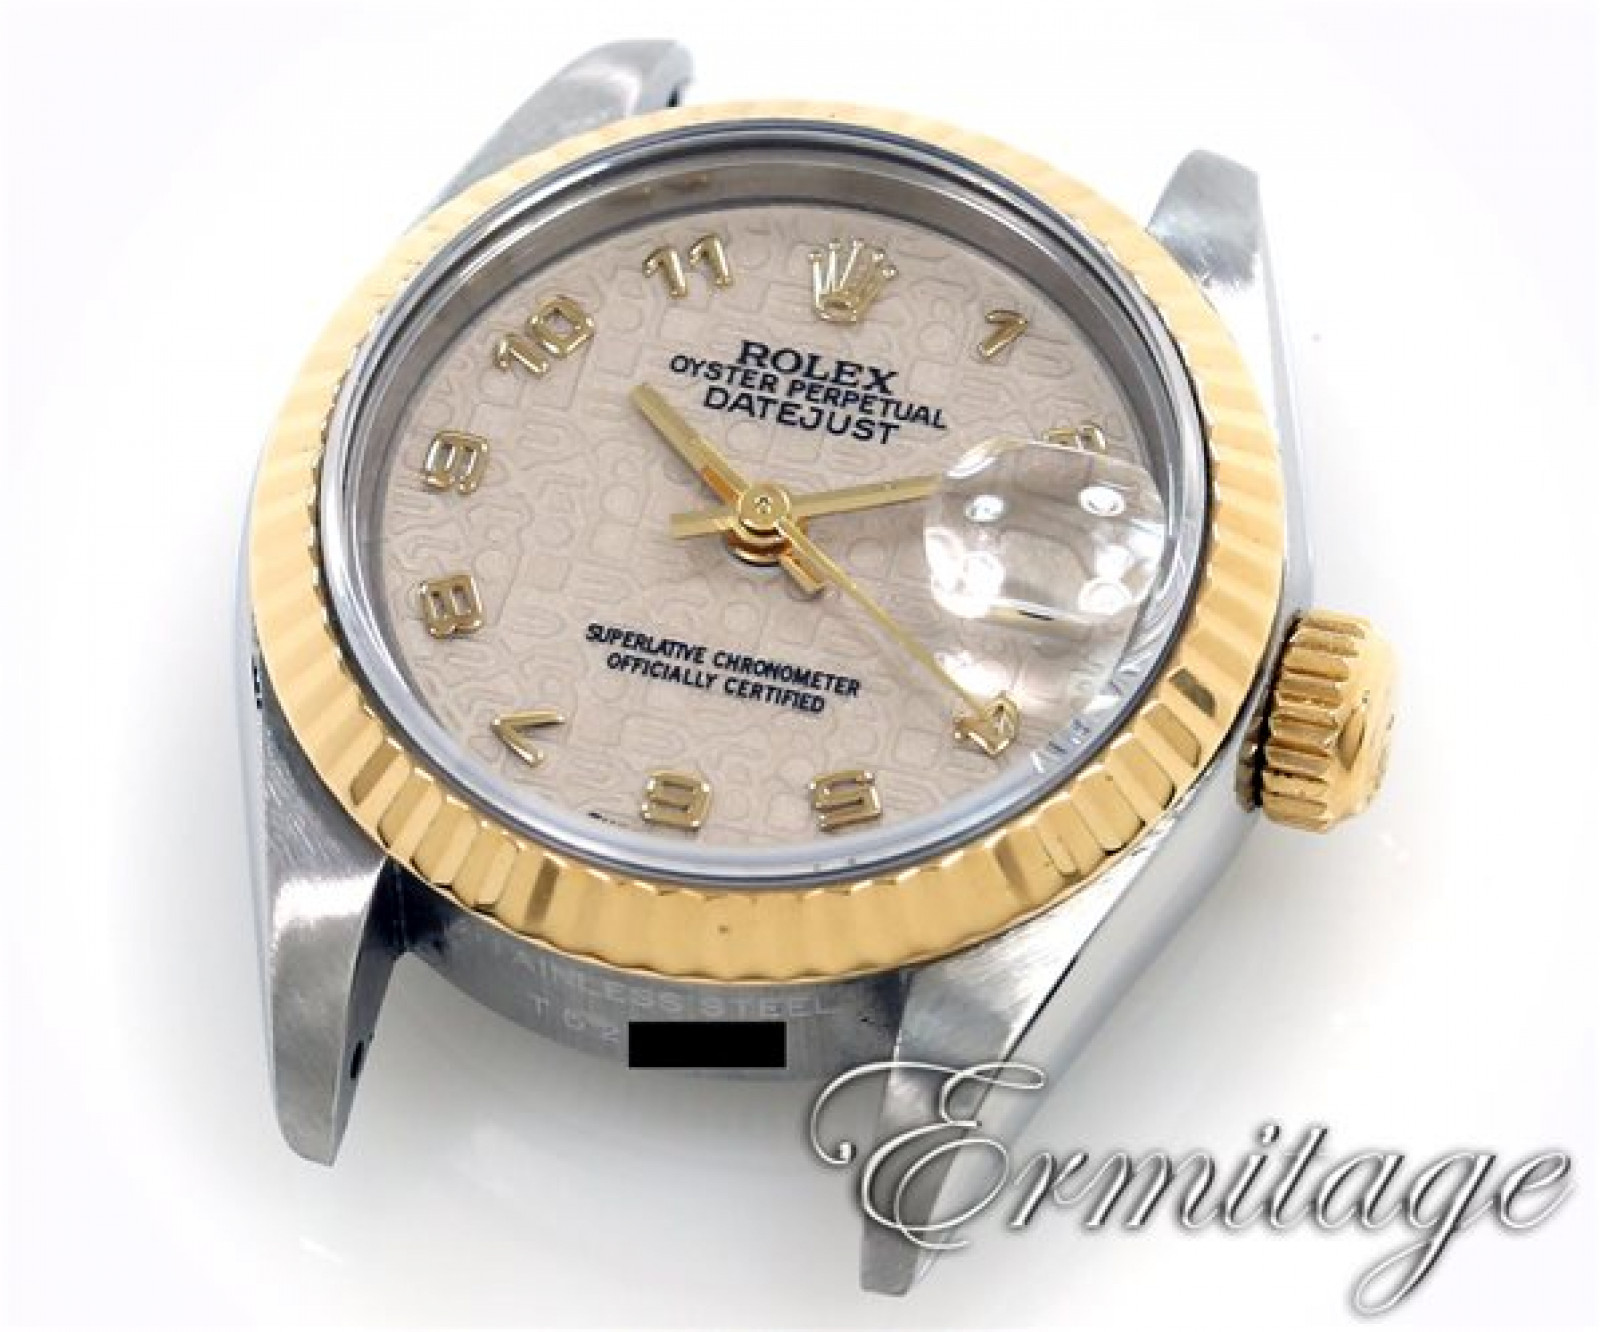 Used Gold & Steel Rolex Oyster Perpetual Datejust 69173